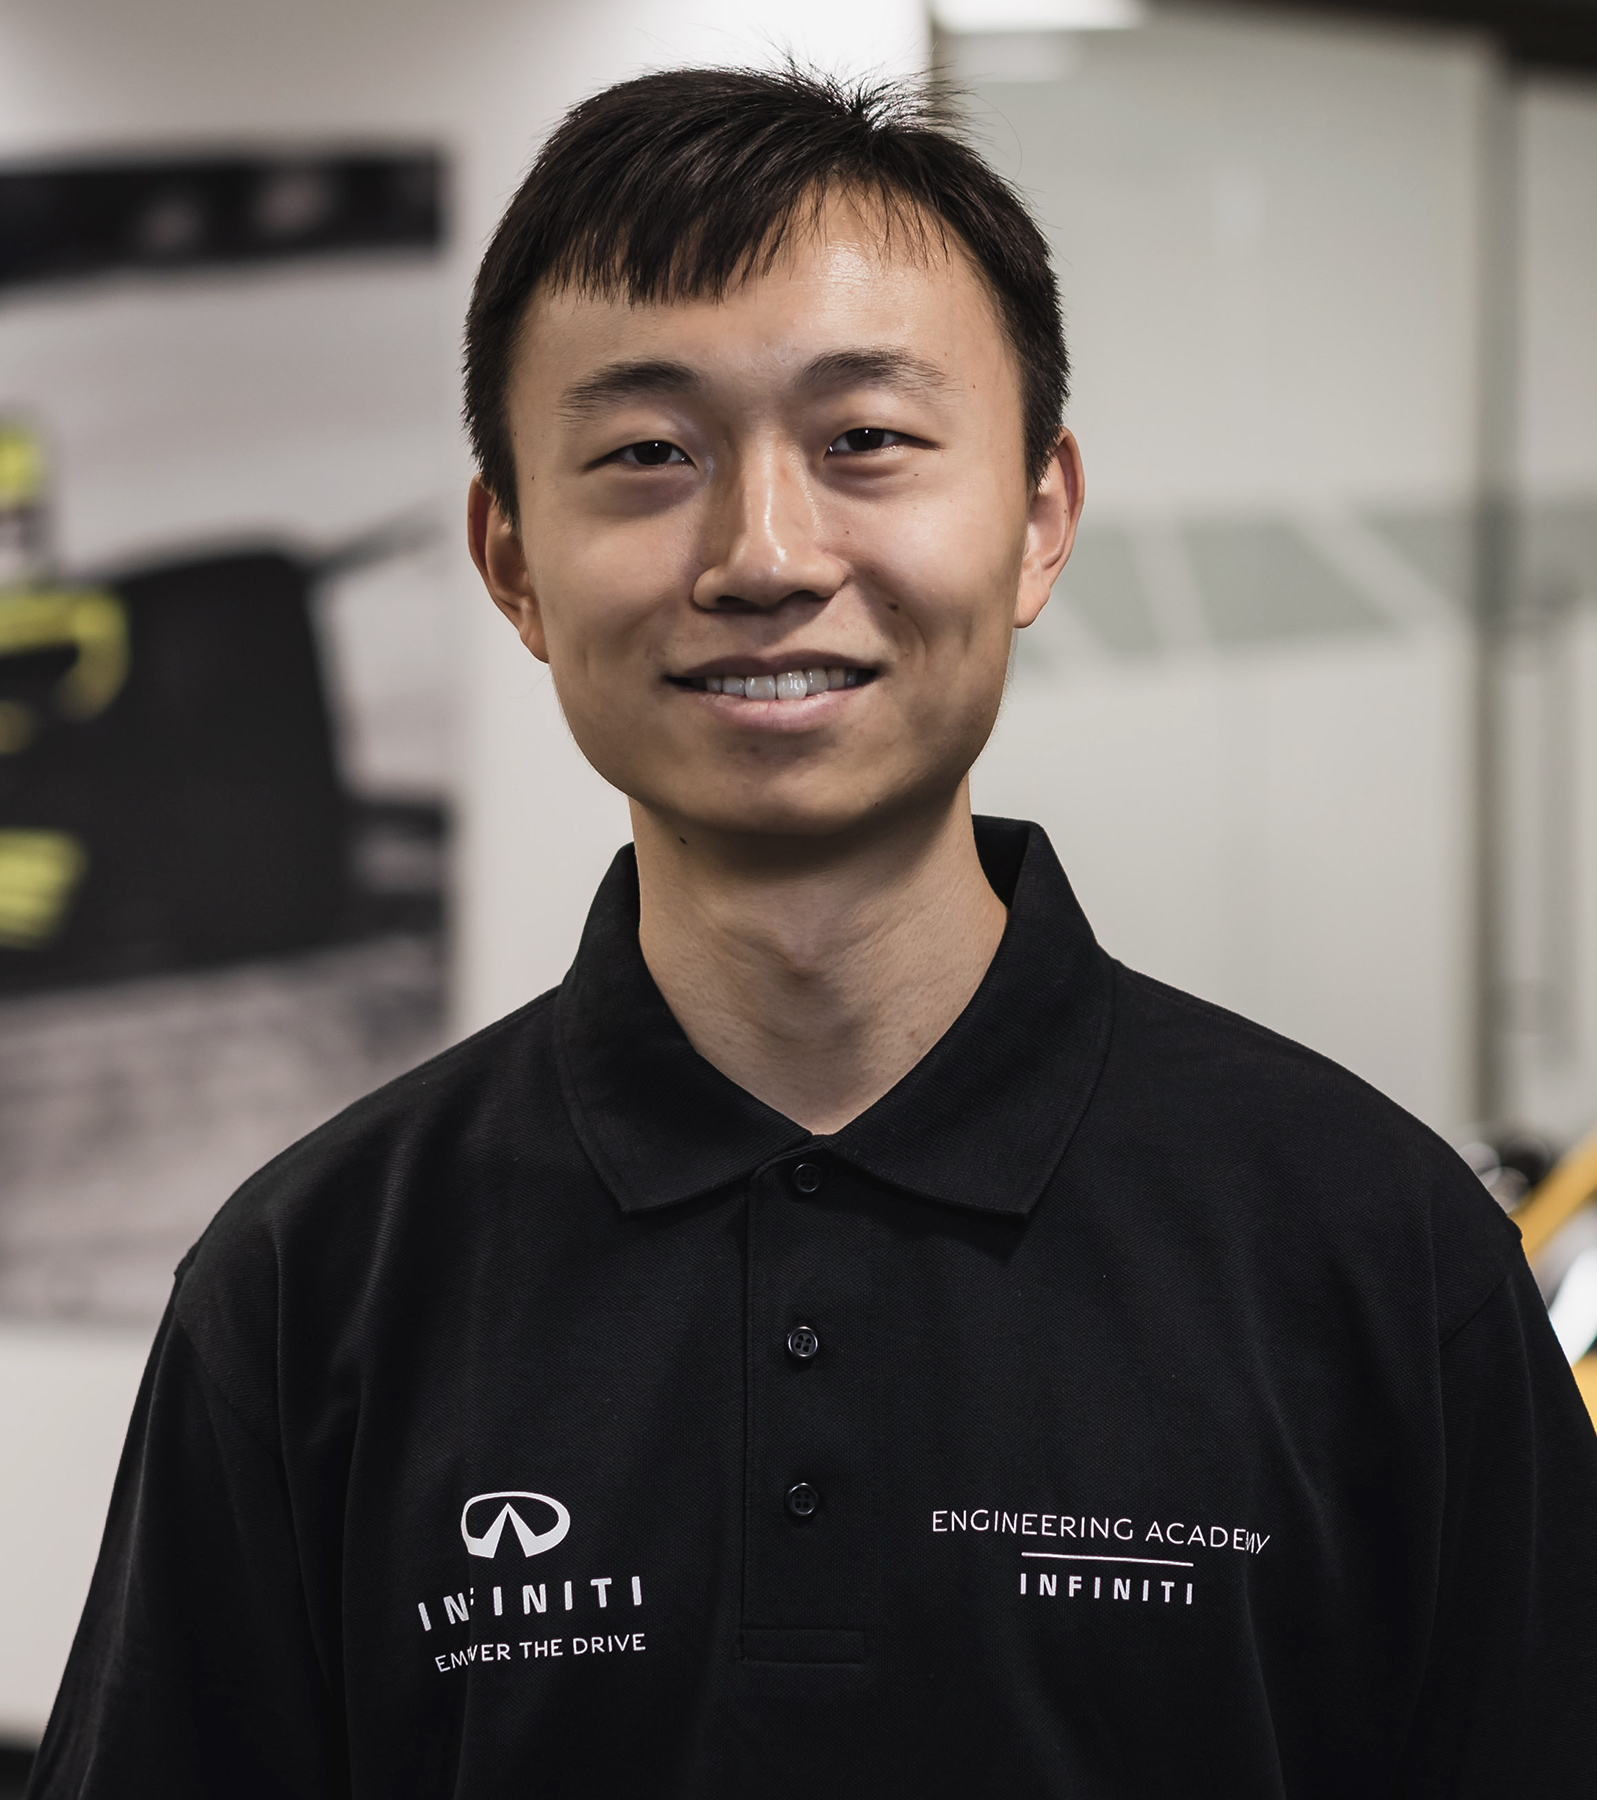 INFINITI Engineering Academy 2019 Engineer Max Zhu Profile